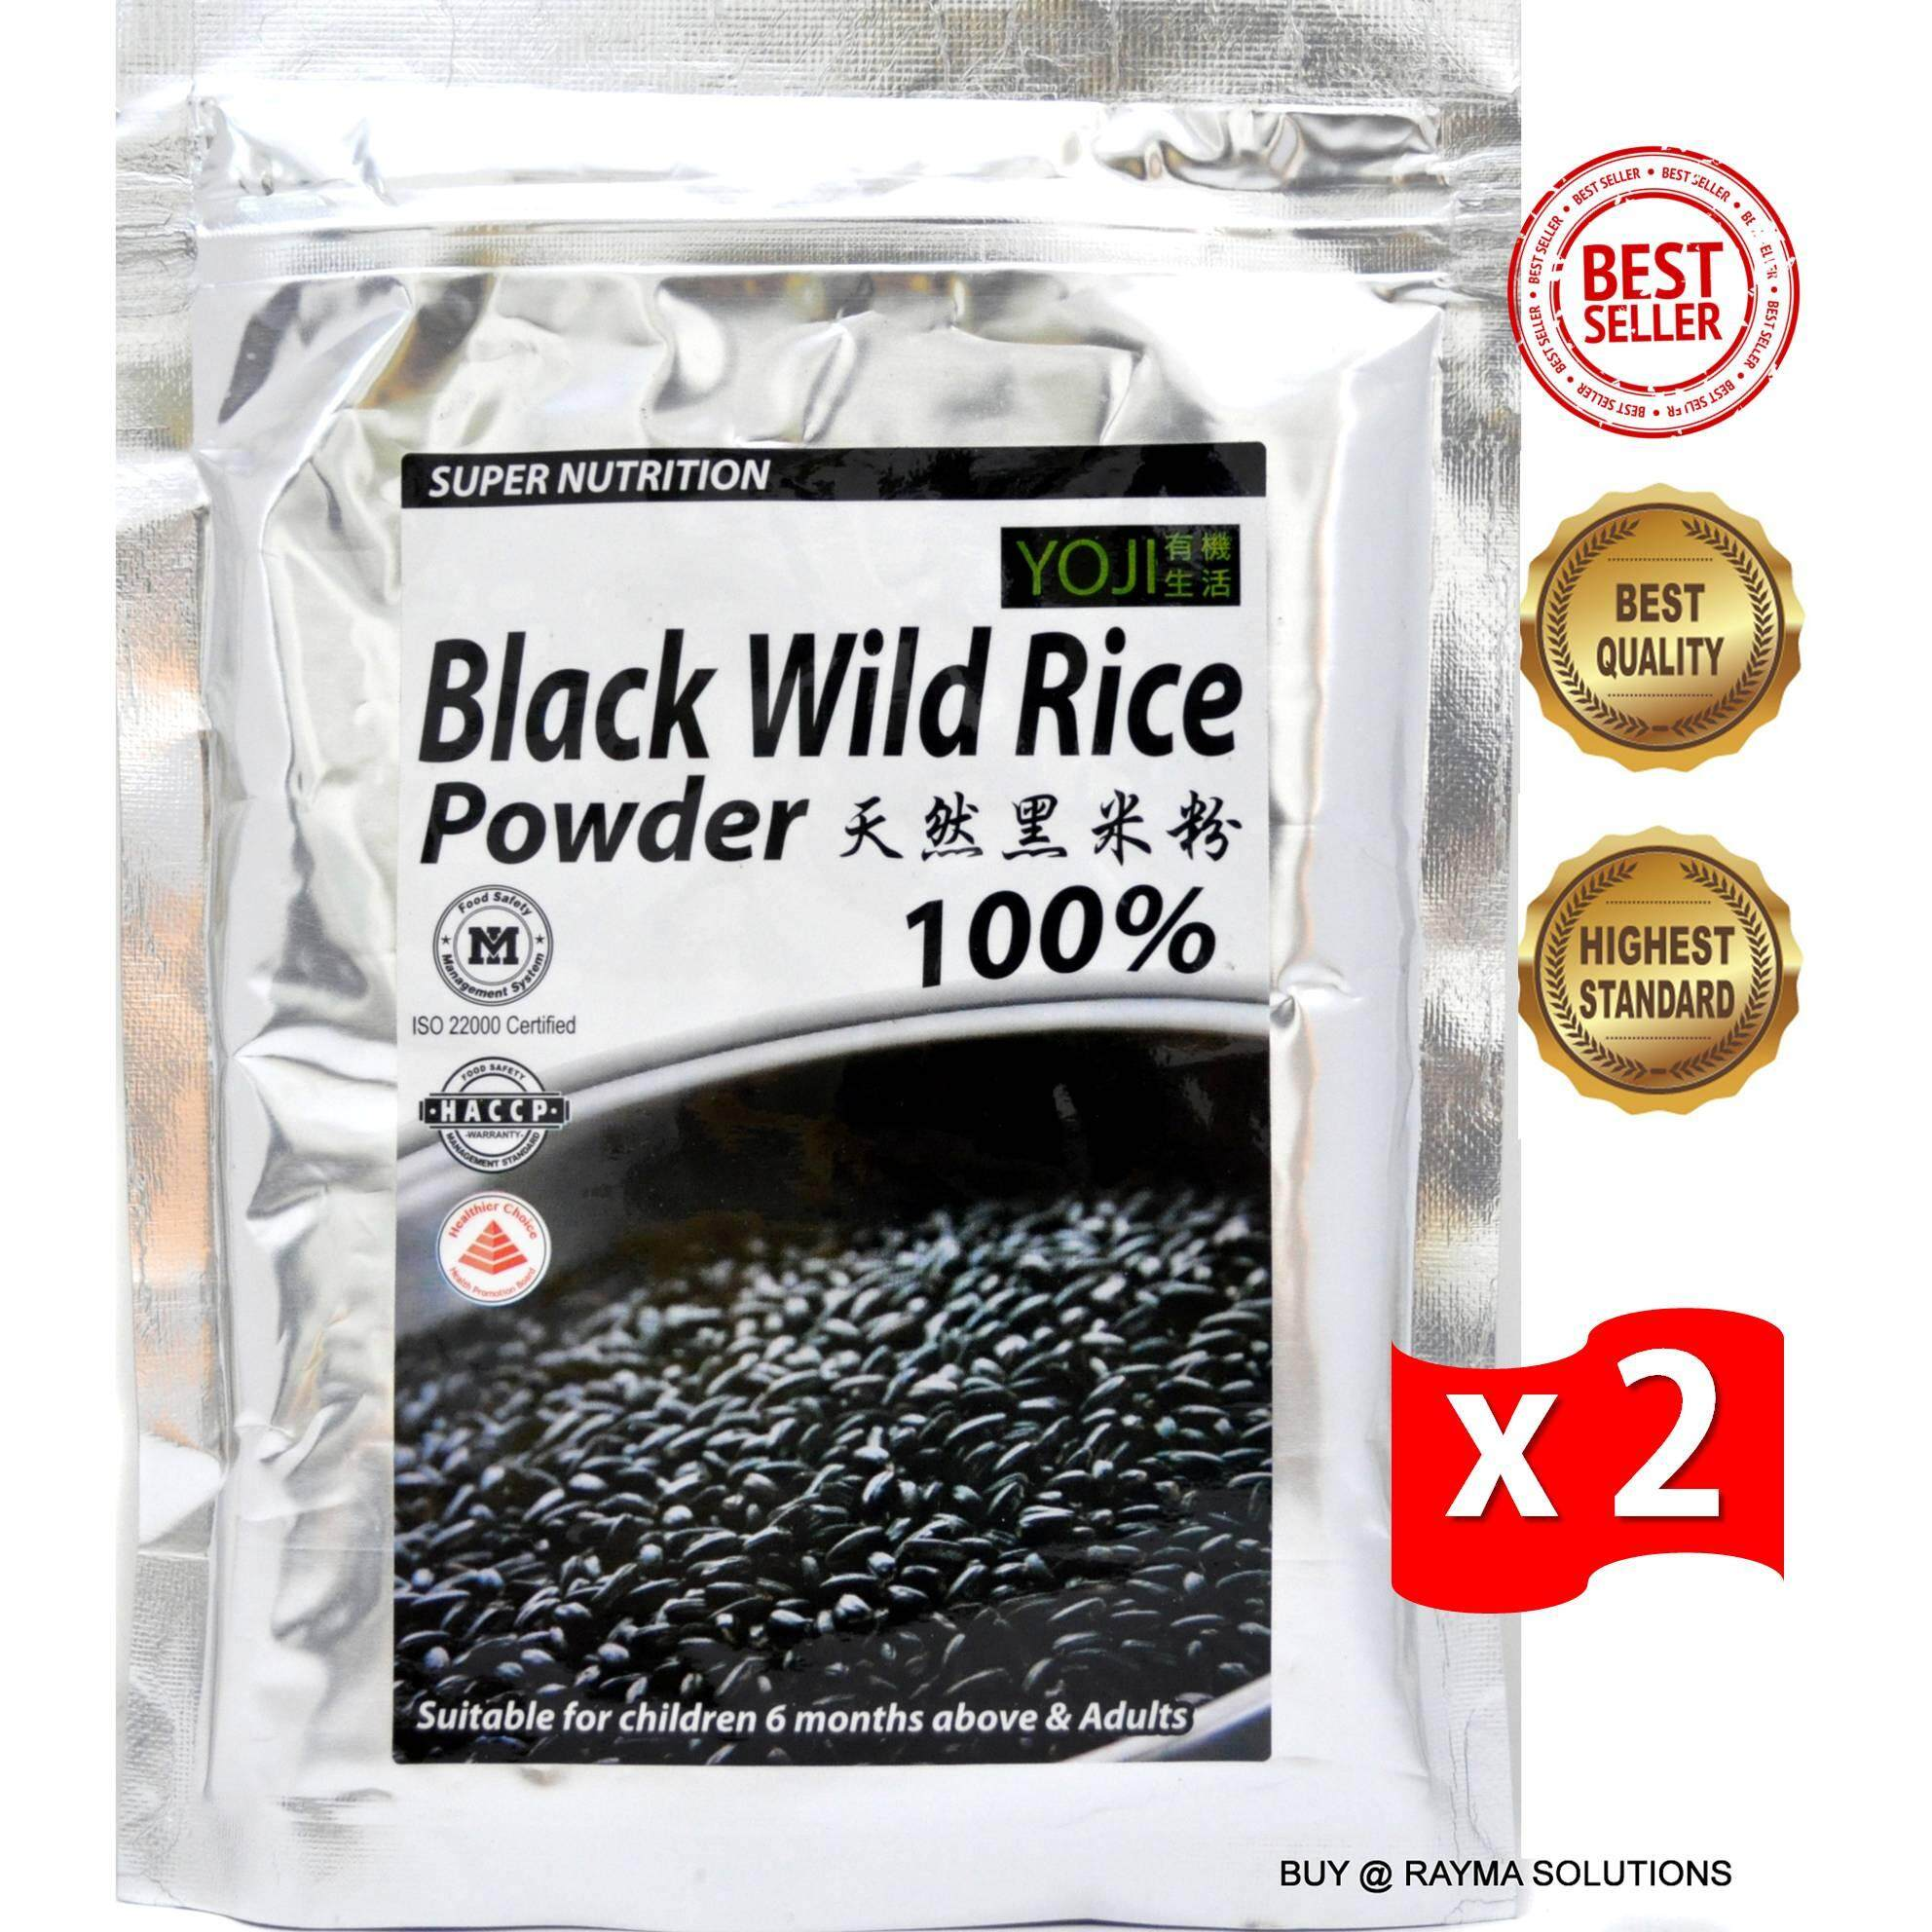 MH FOOD Super Nutrition Black Wild Rice Powder, Gluten-Free, for Children 6 months above & Adults 500g (Twin Pack)